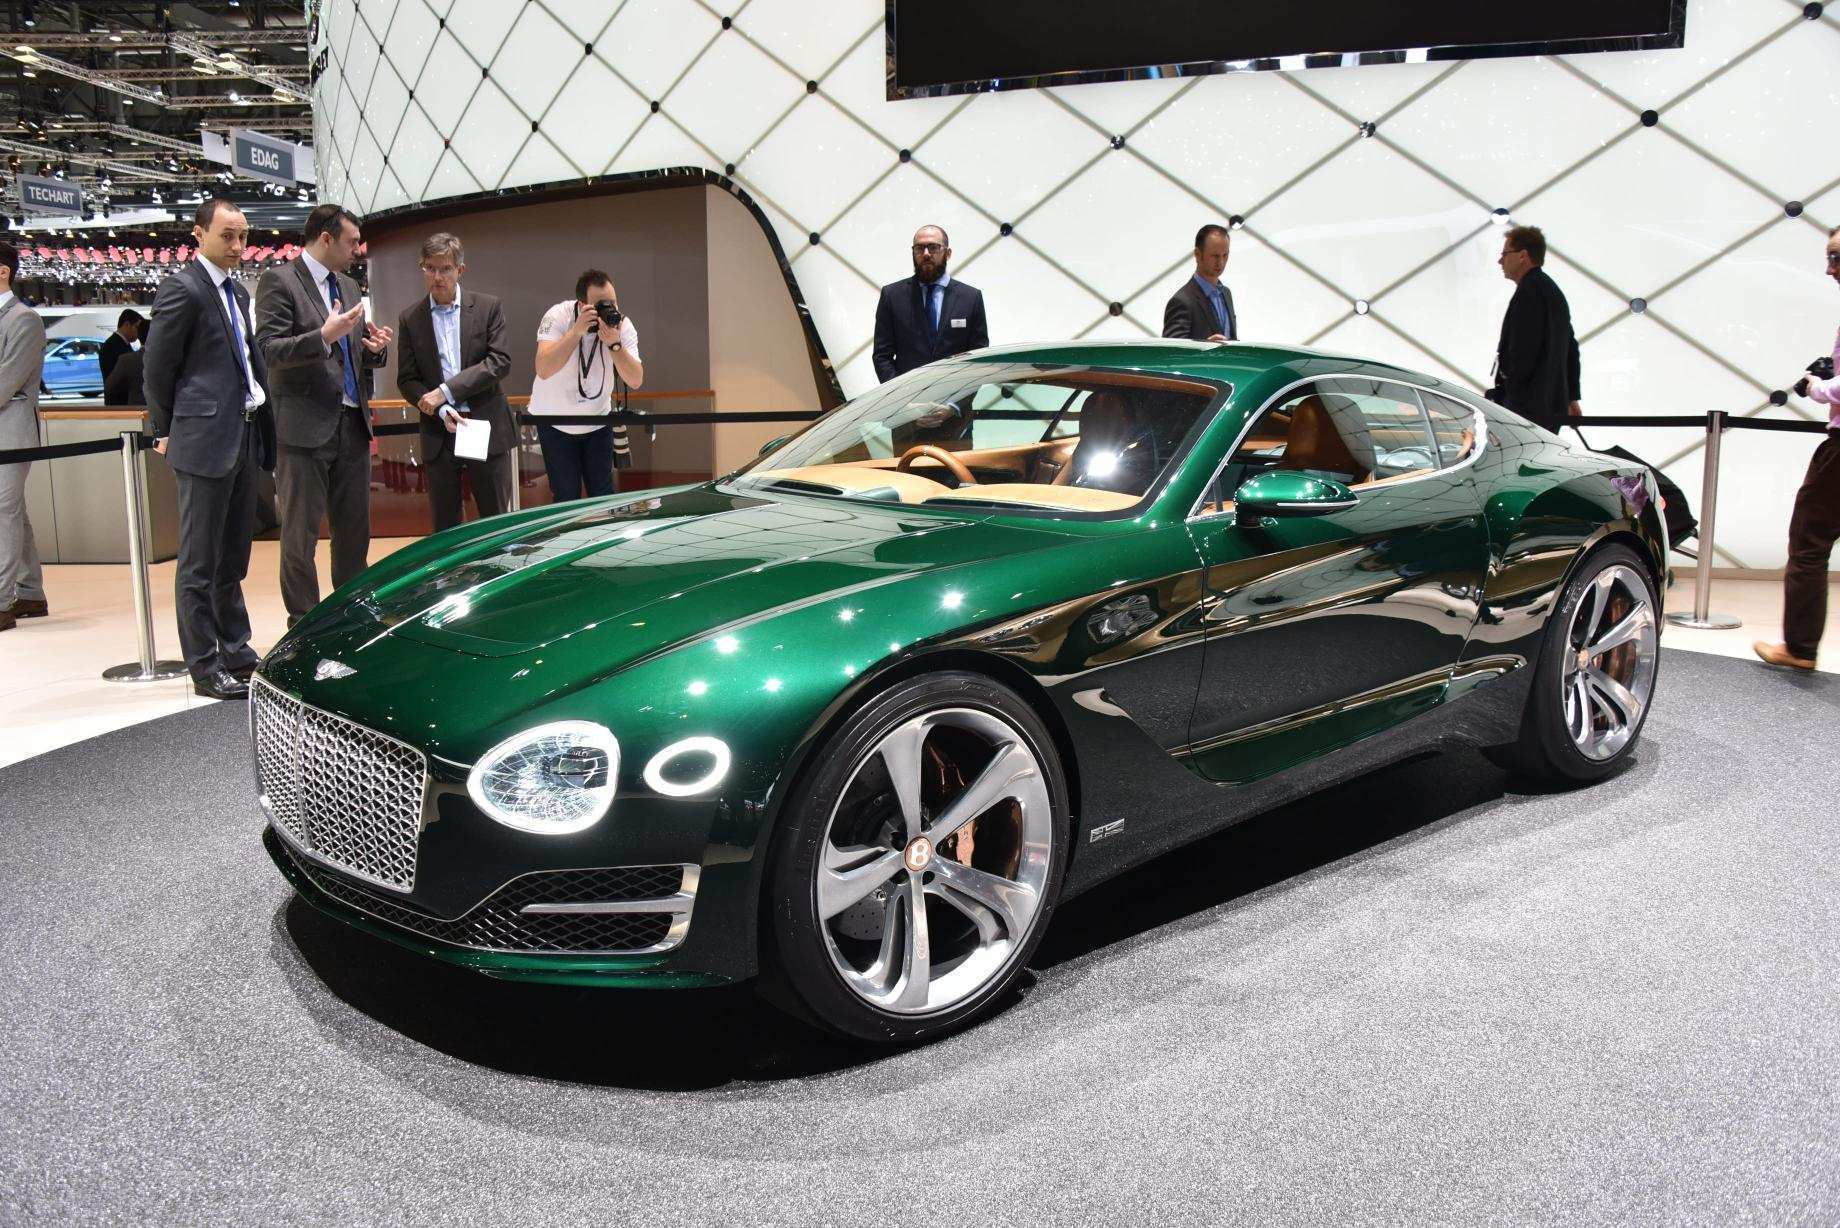 65 Great 2020 Bentley Gt Rumors by 2020 Bentley Gt